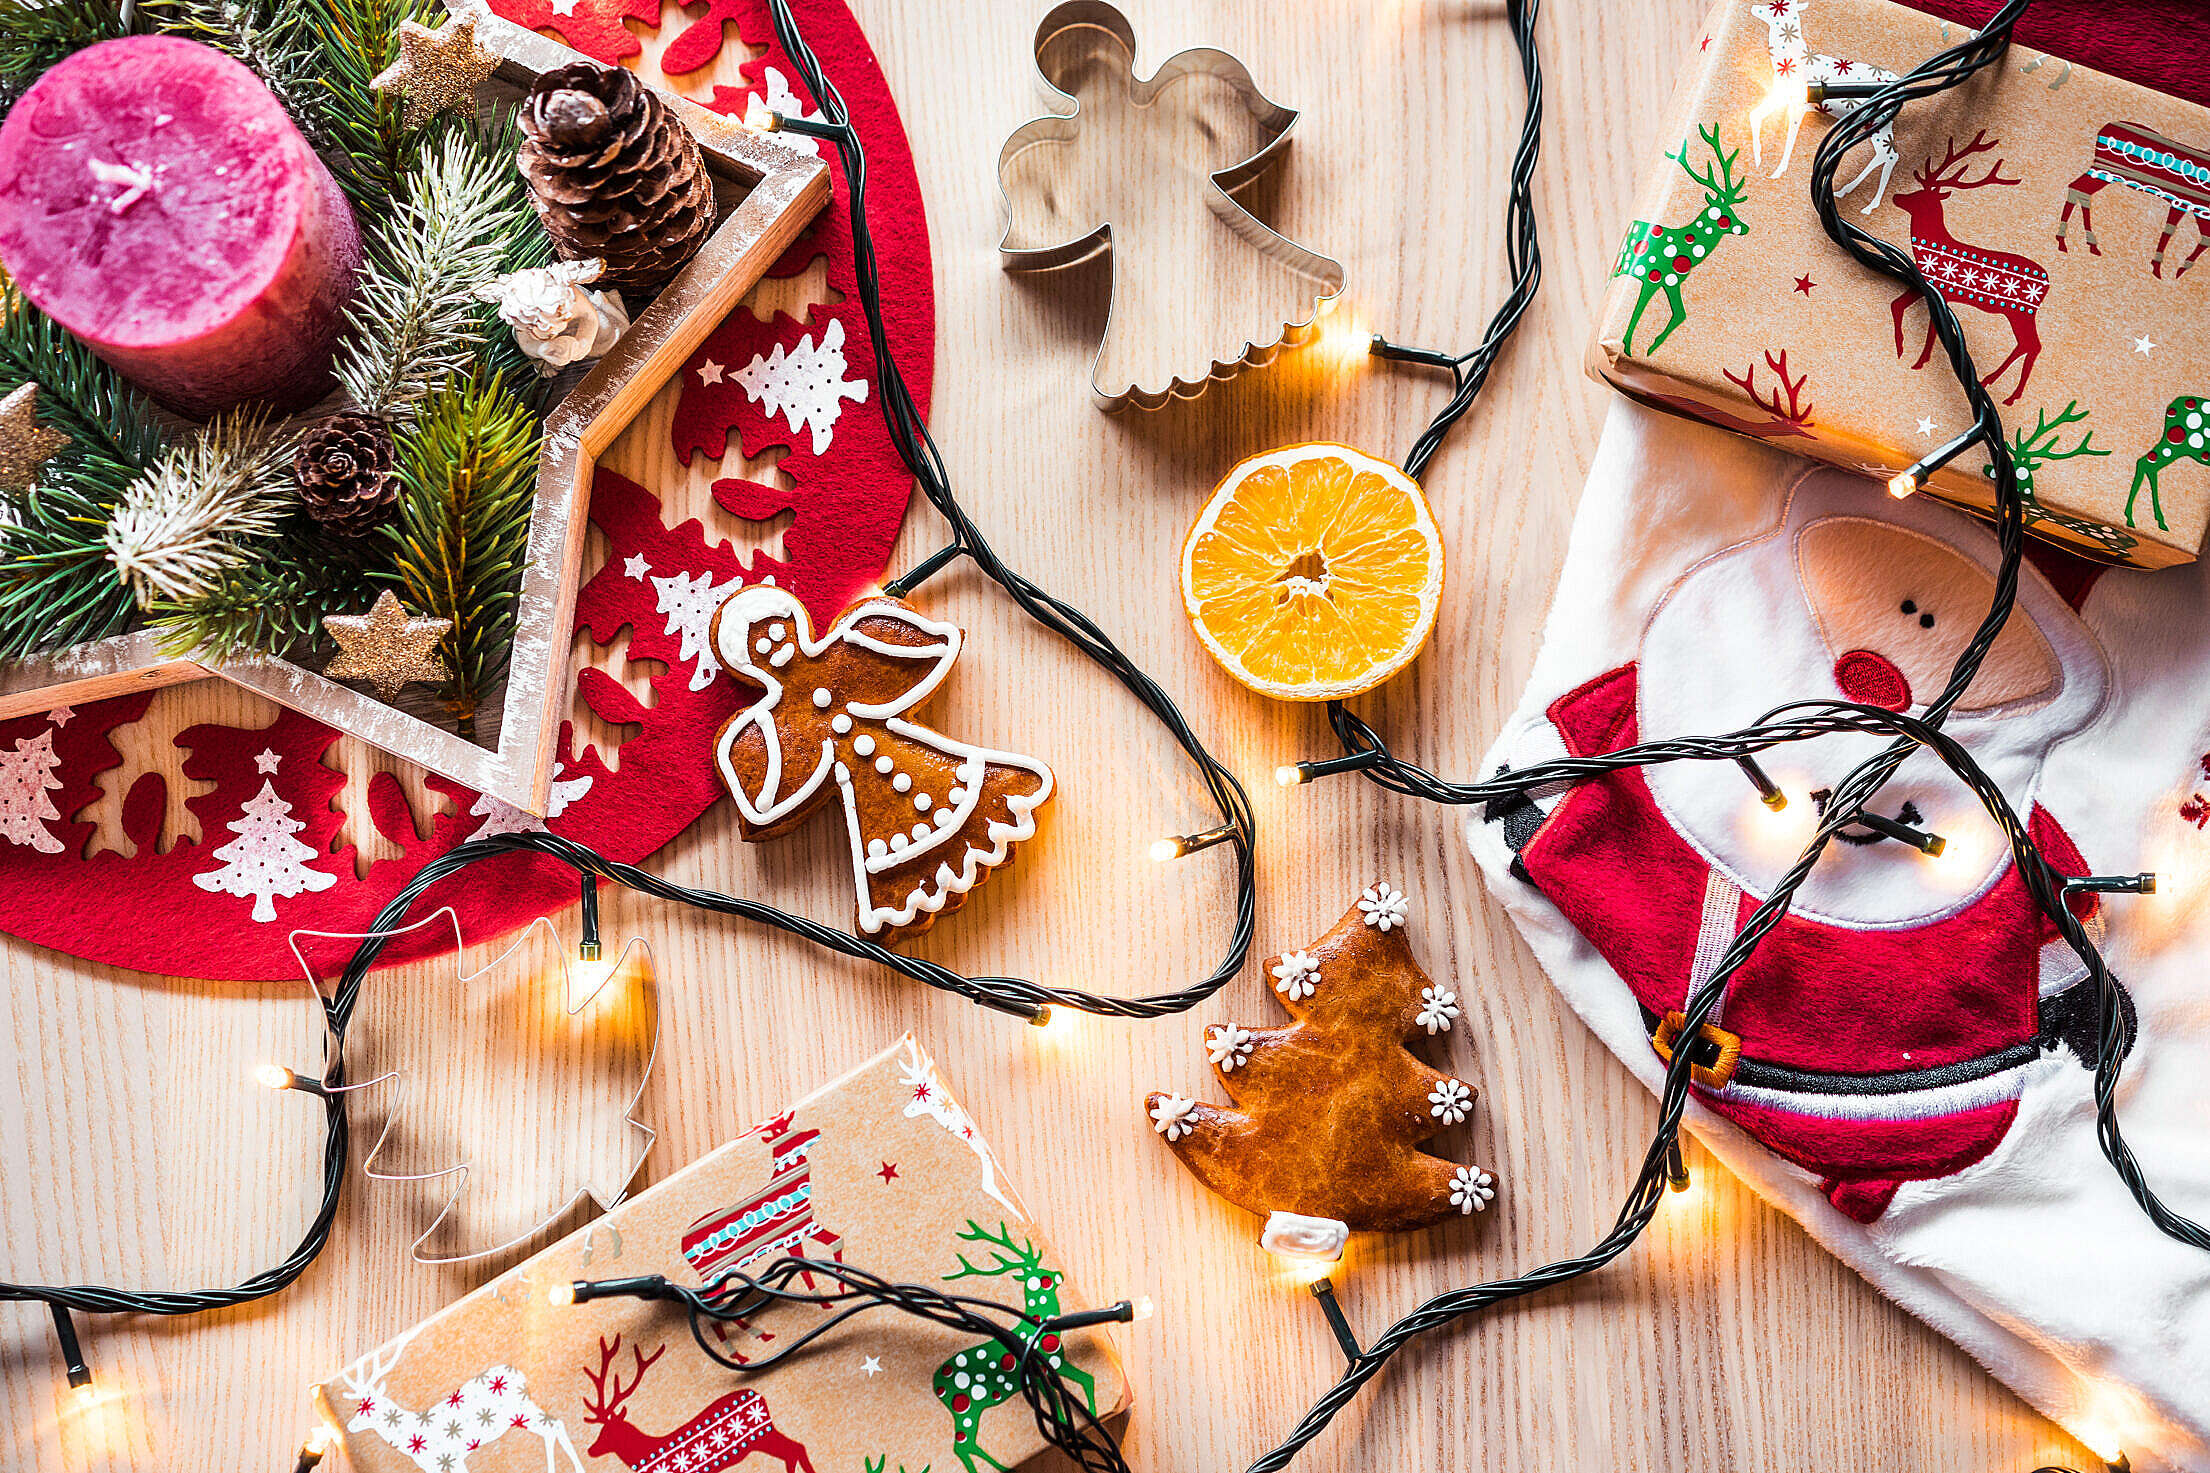 Christmas Time Decorations Still Life Free Stock Photo